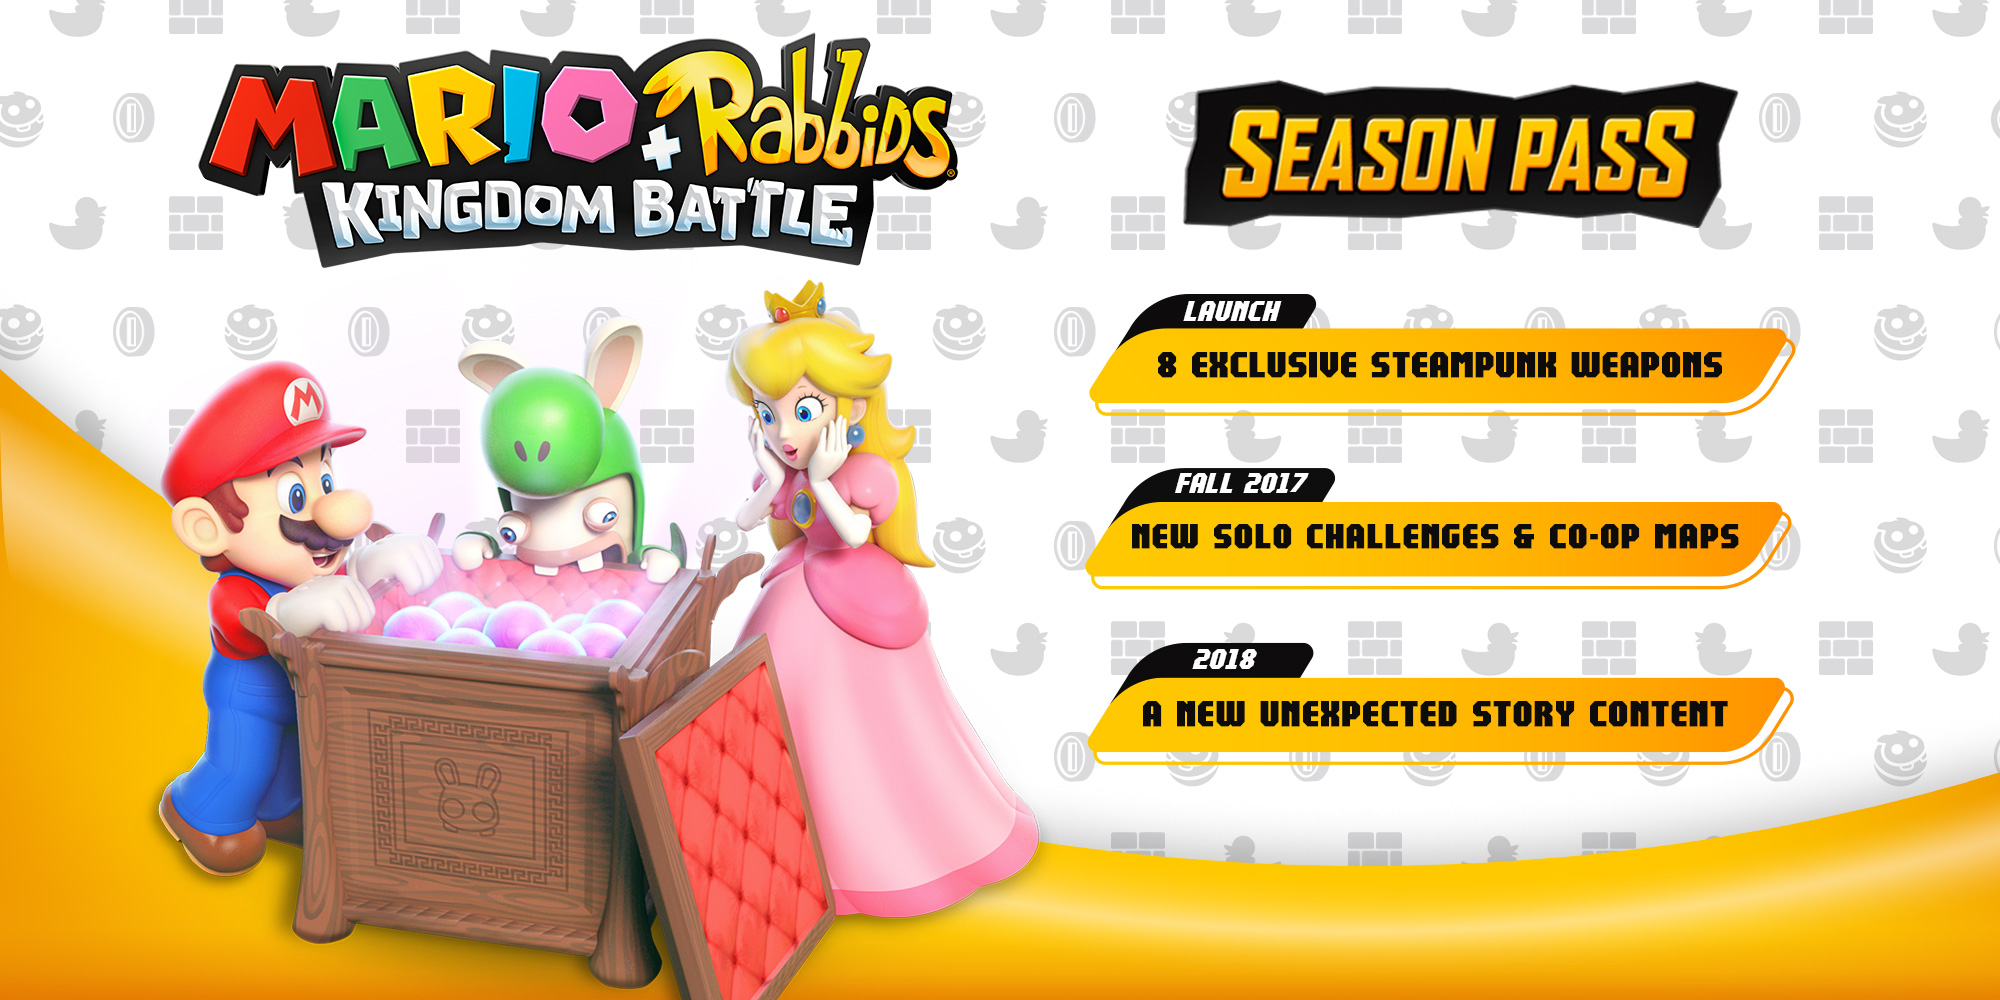 'Mario + Rabbids Kingdom Battle' Getting Season Pass